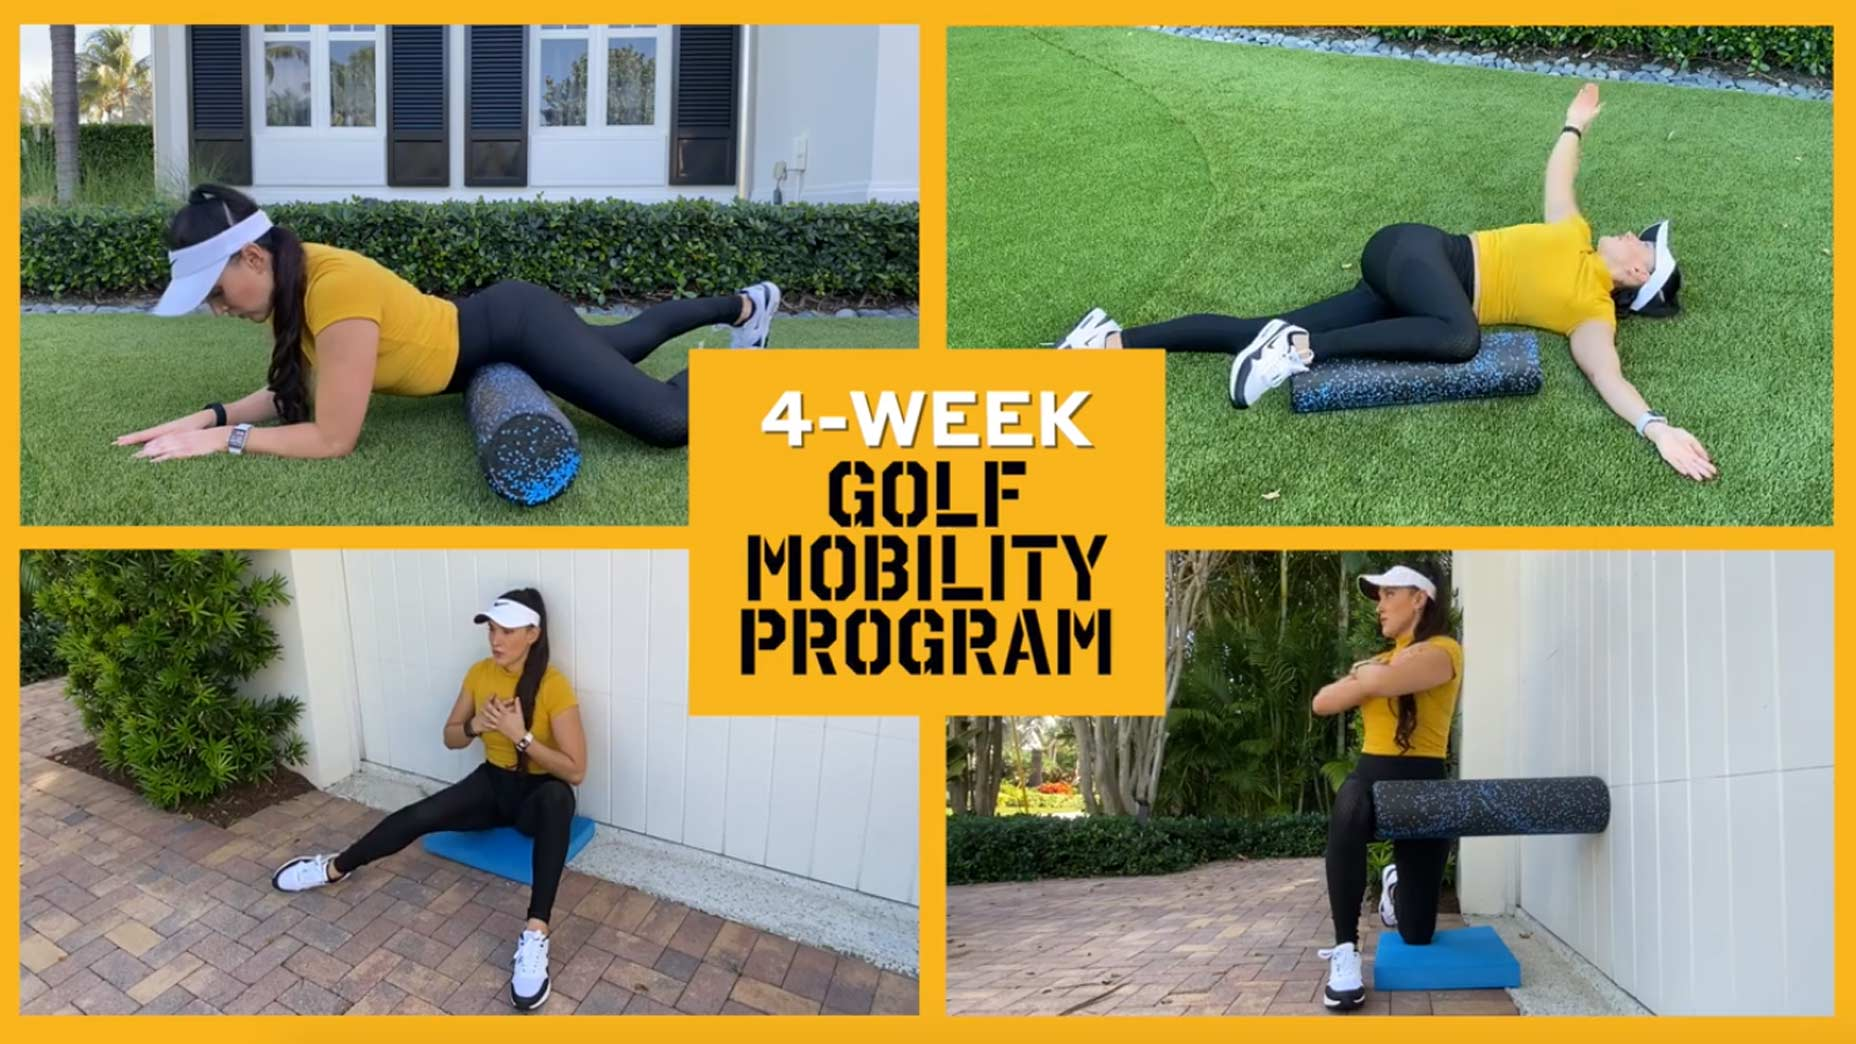 Home Fitness: This mobility program is for every golfer who sits at a desk all day